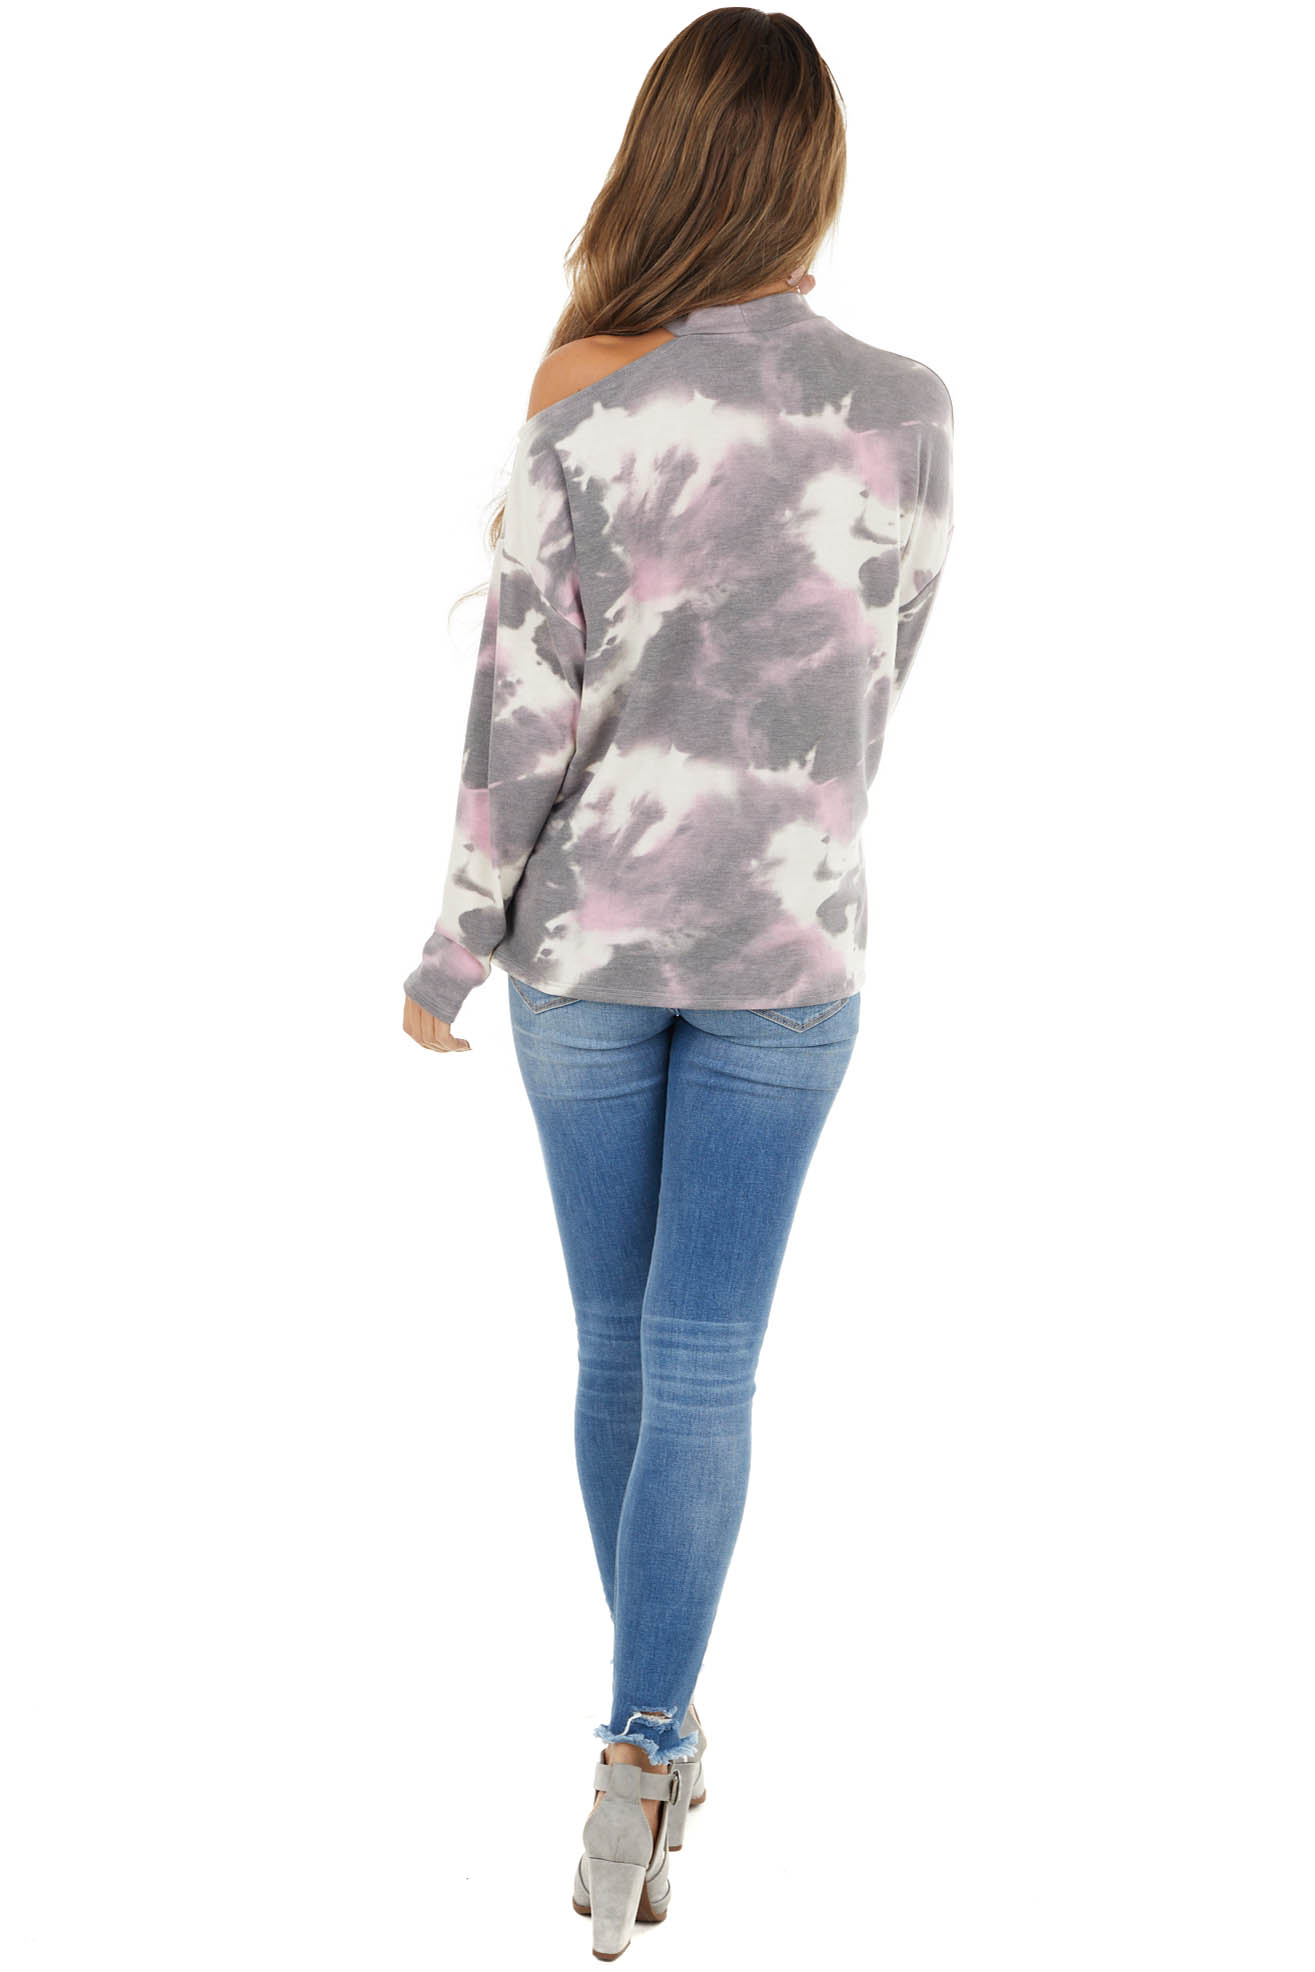 Taupe Tie Dye Print Long Sleeve Top with One Cold Shoulder